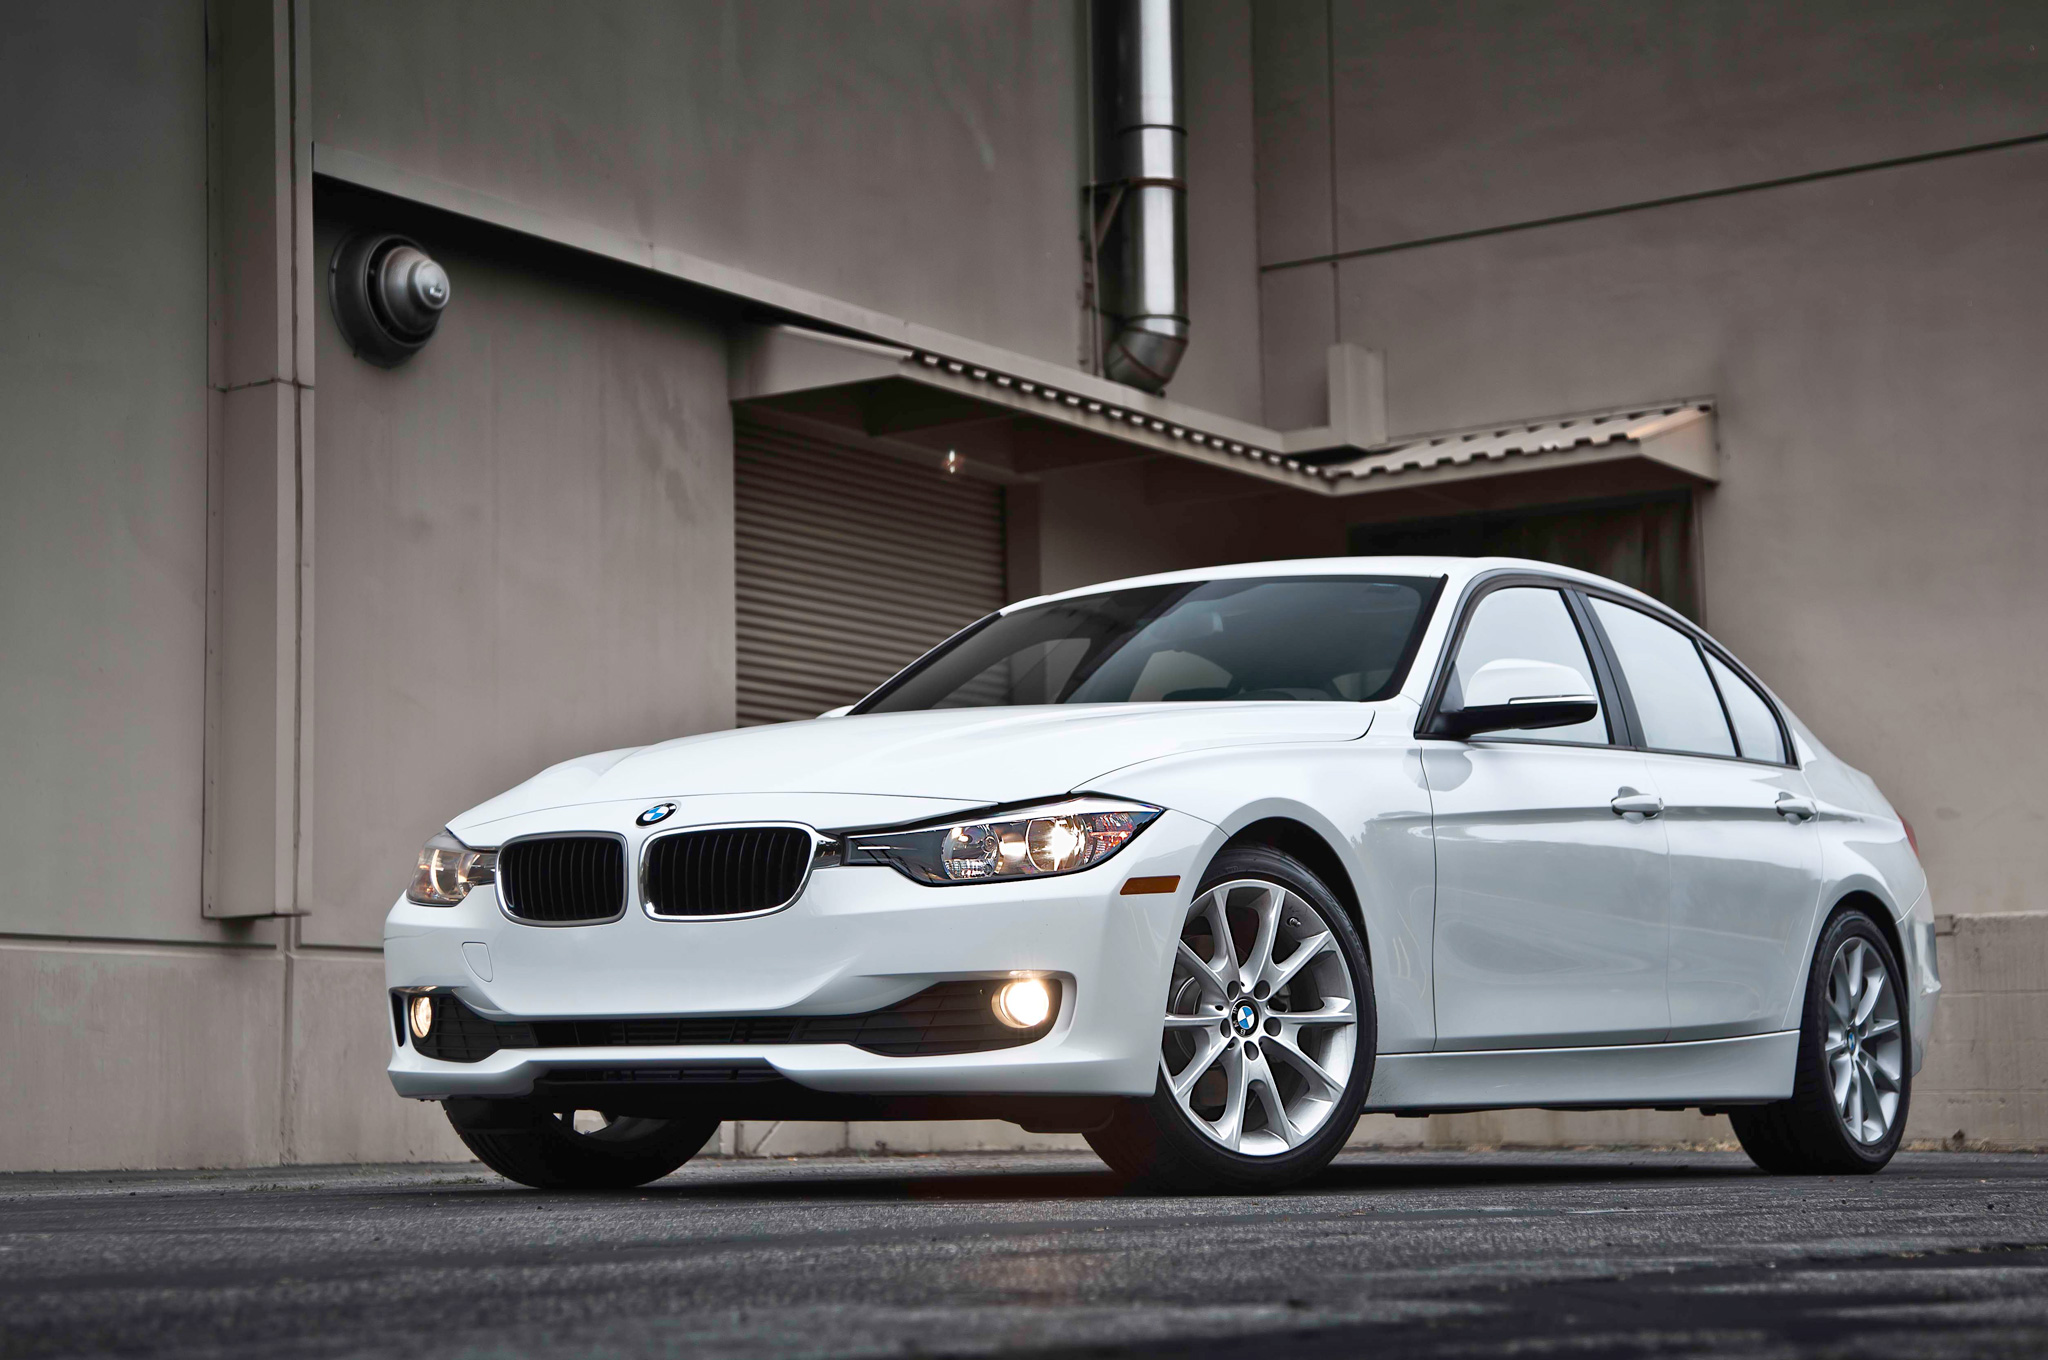 2013 bmw f30 320i test drive by motortrend autoevolution. Black Bedroom Furniture Sets. Home Design Ideas